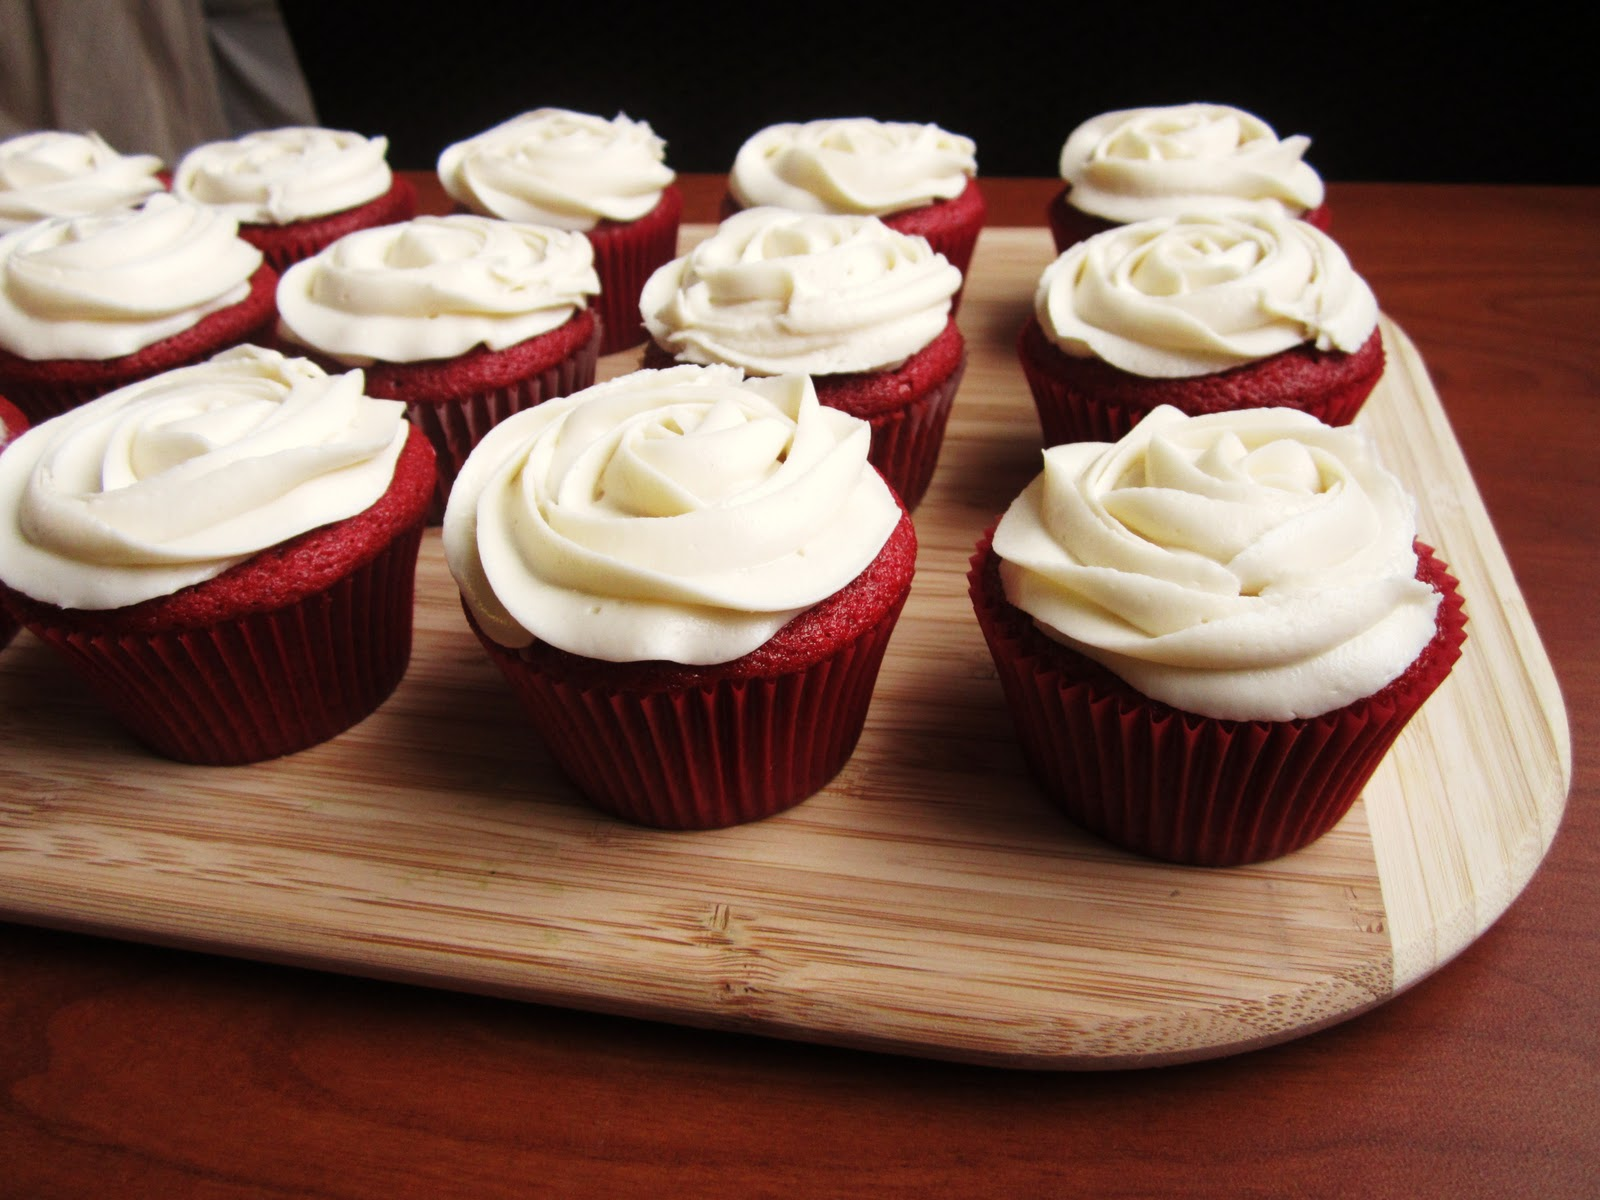 Sue Chef: Red Velvet Cupcakes with Cream Cheese Frosting